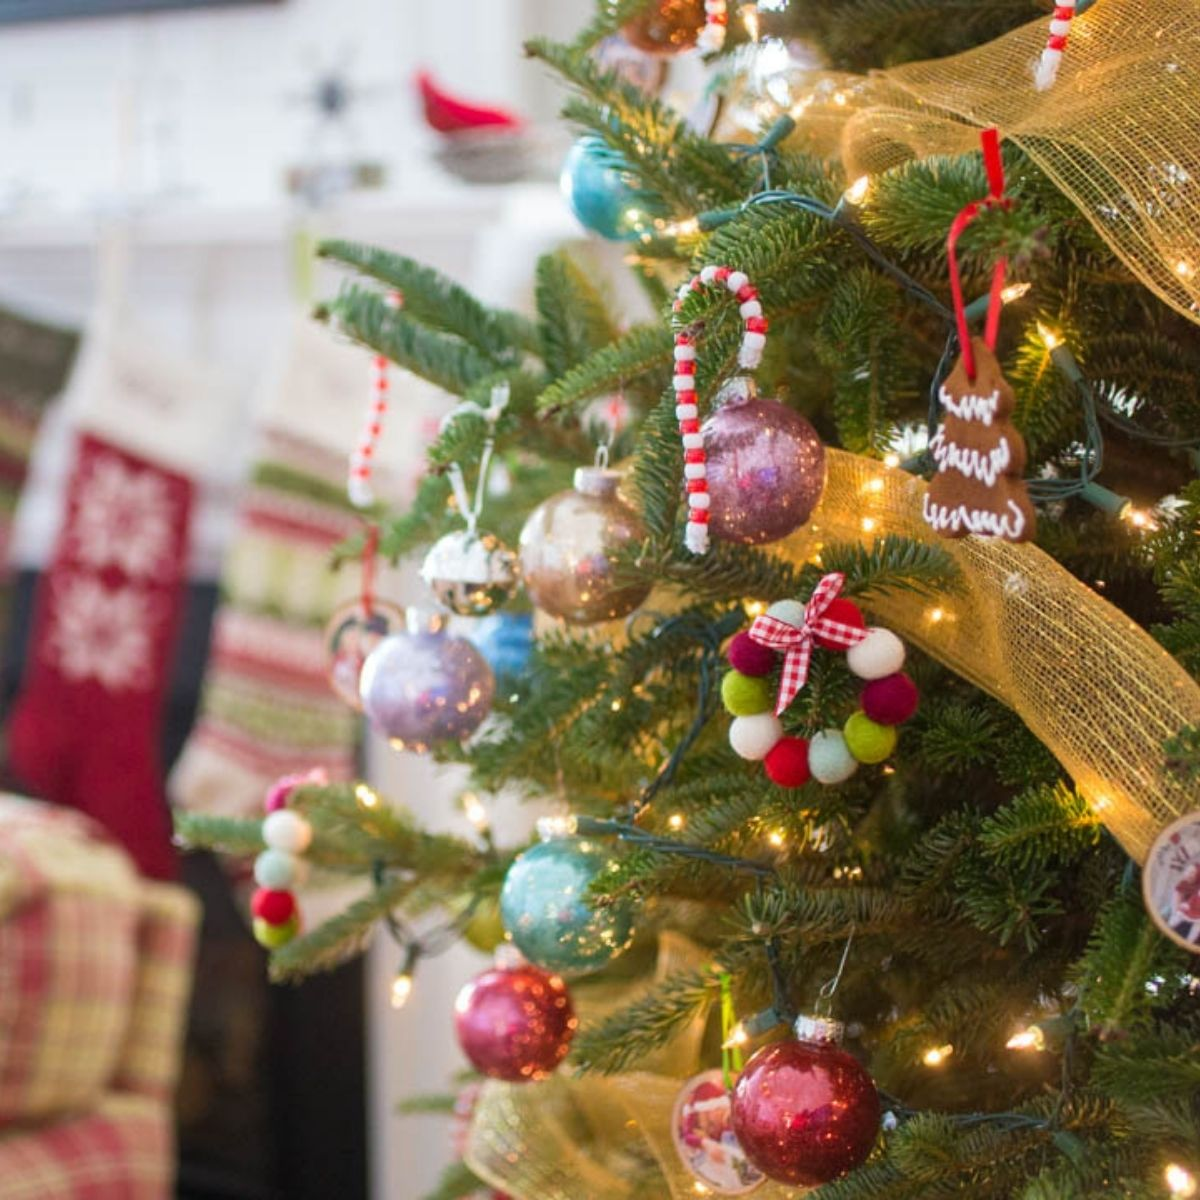 A Christmas tree is decorated with homemade ornaments. You can see stockings in the background.